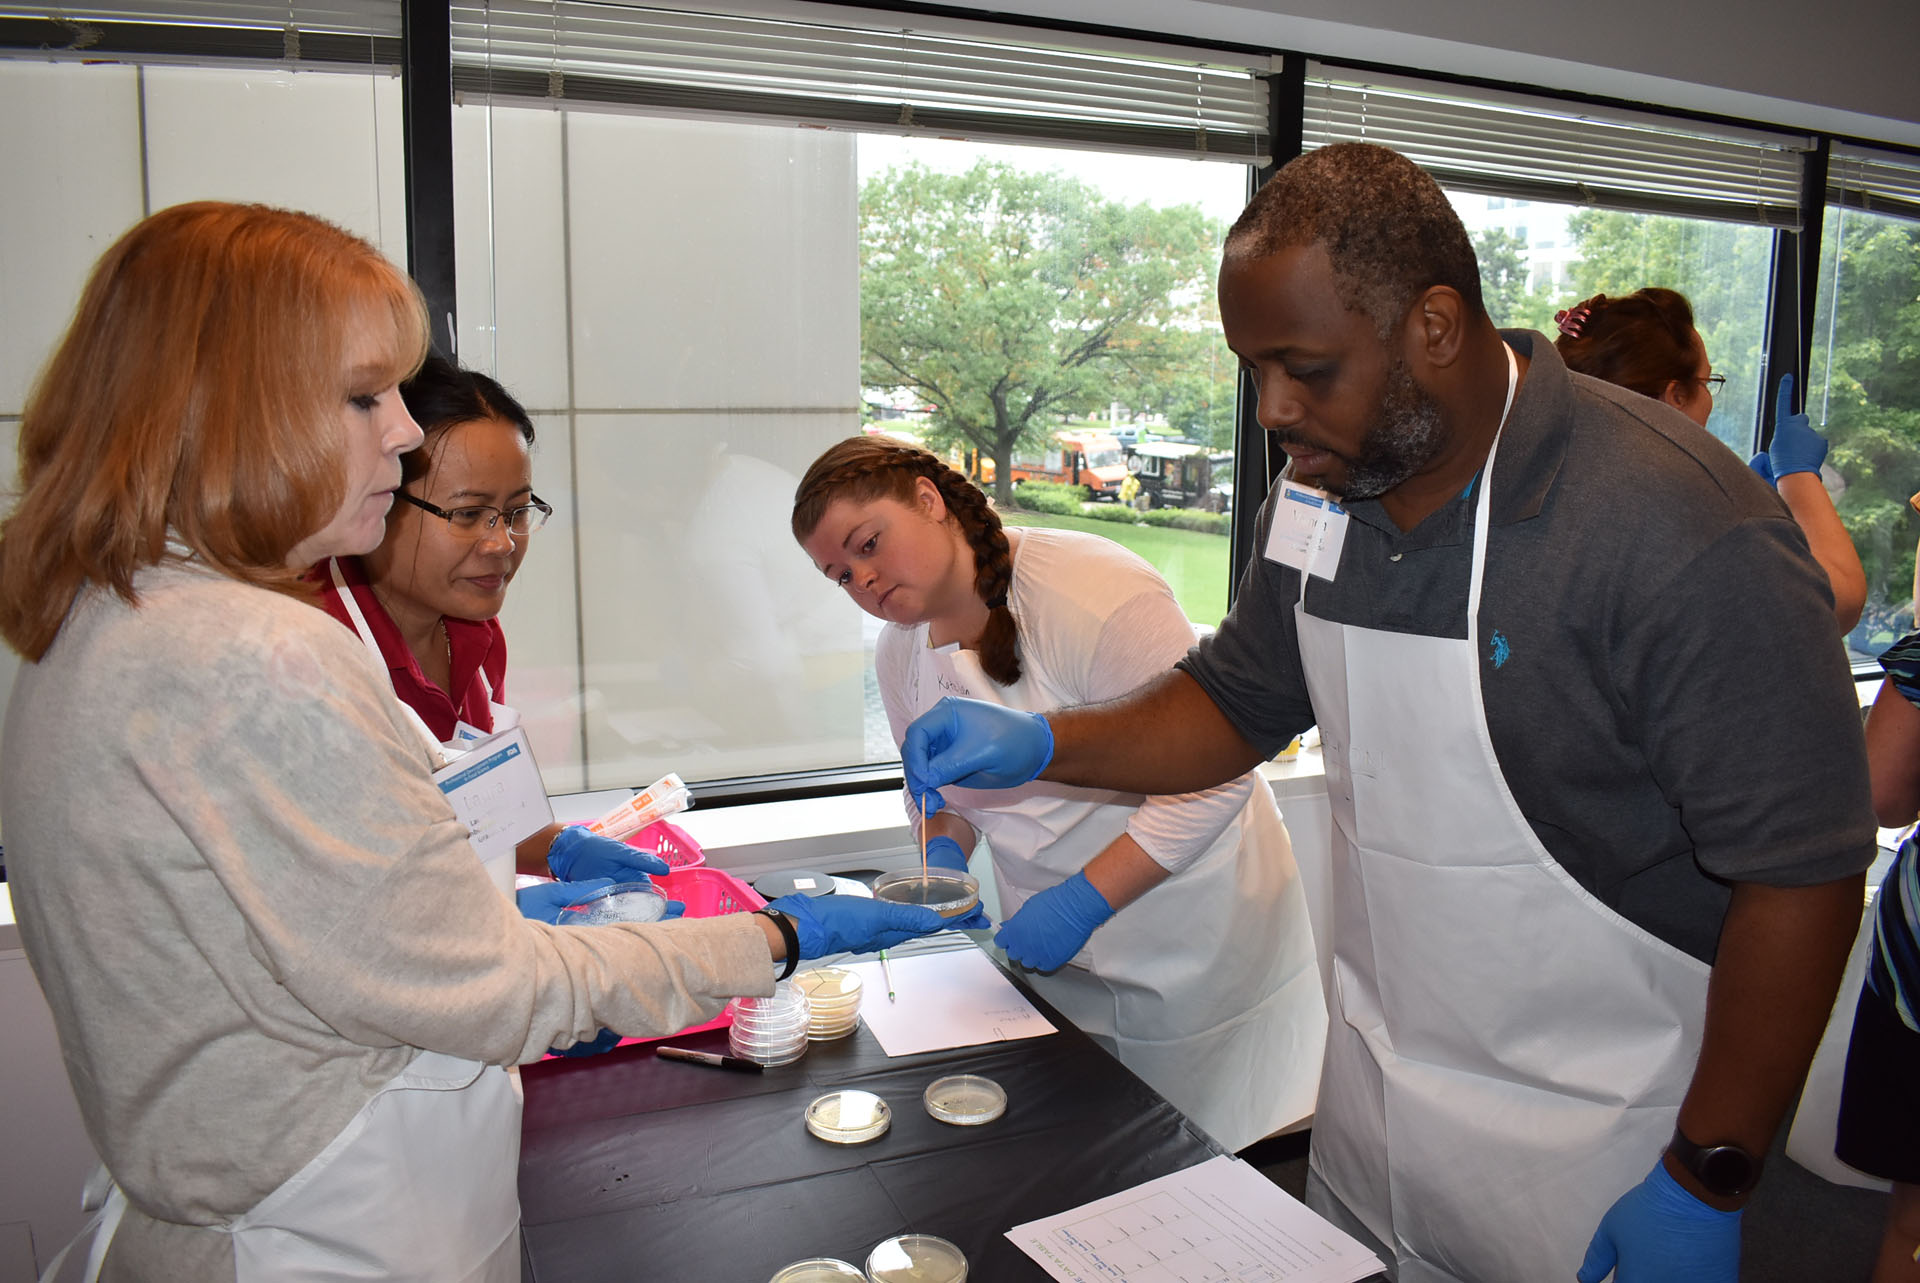 Teachers participating in a lab